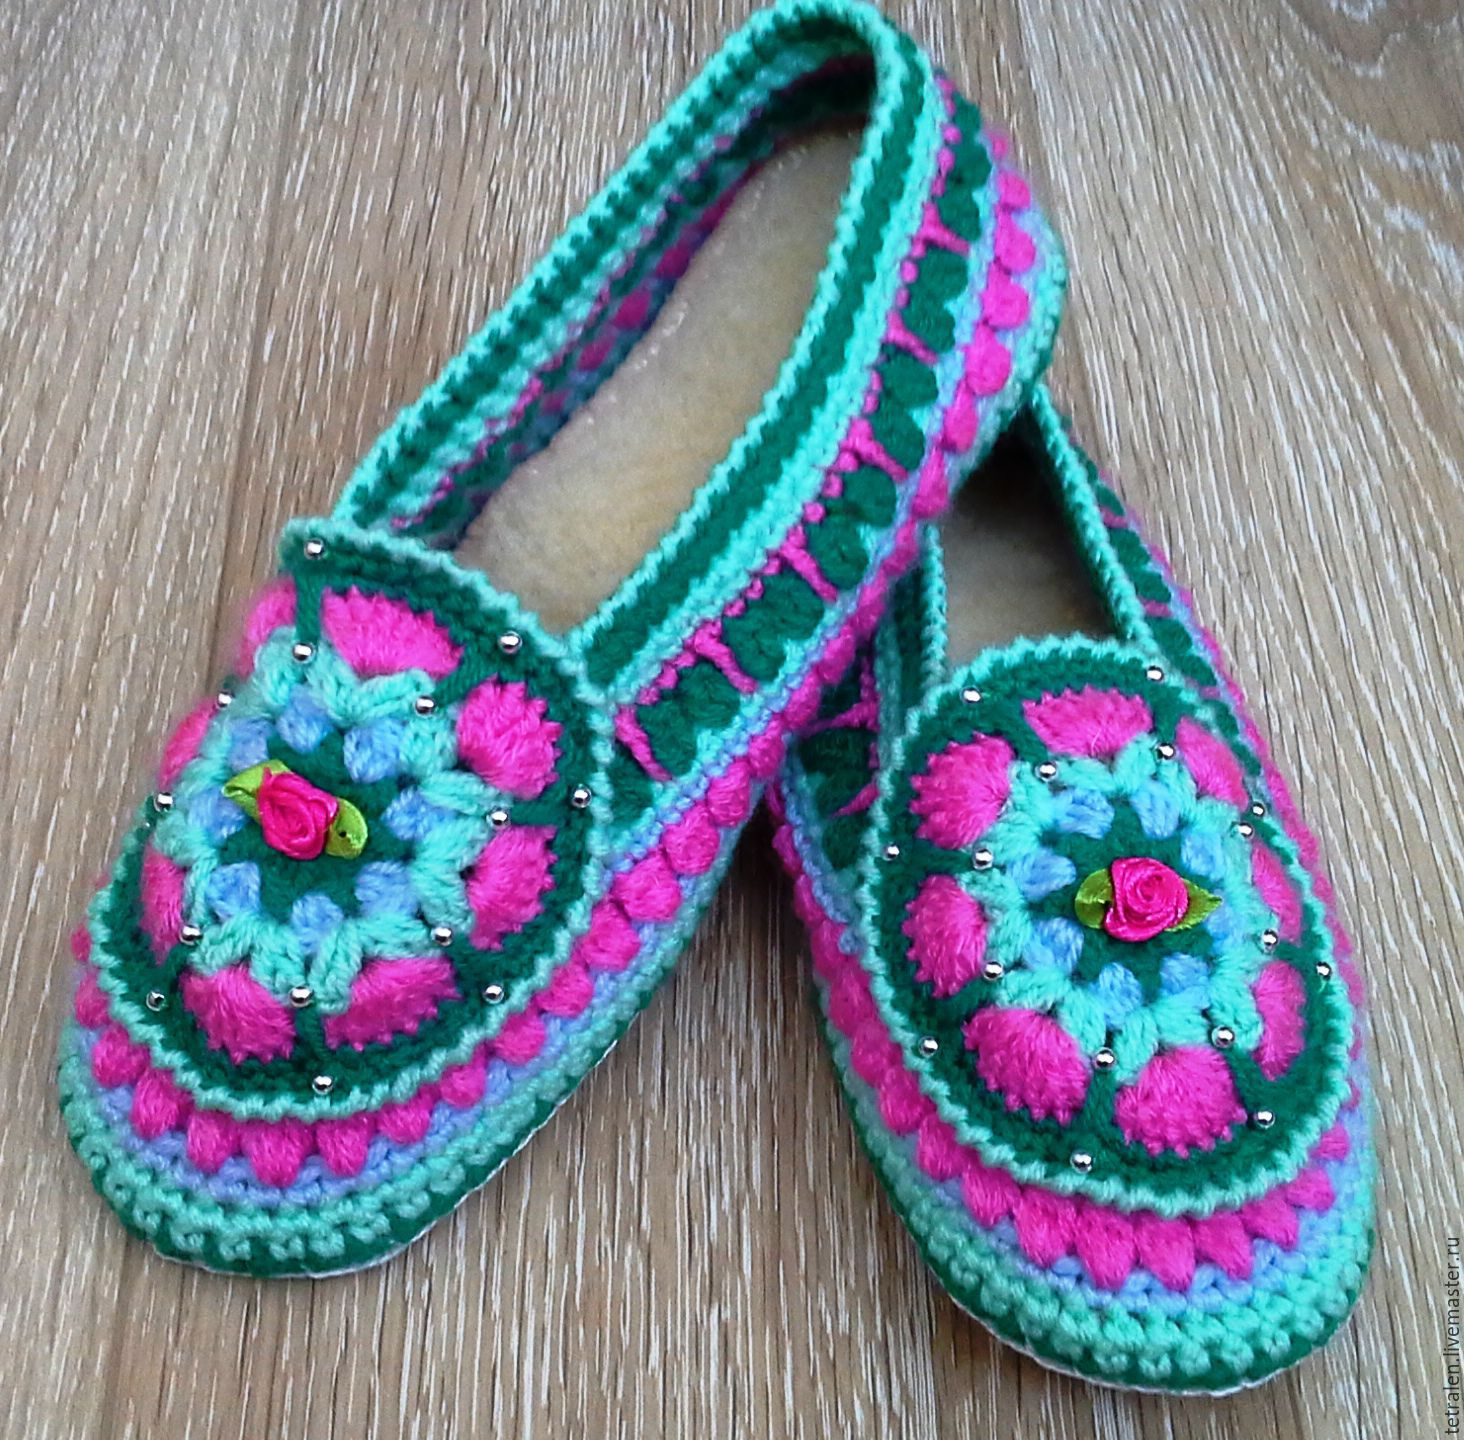 Knitting Patterns For Slippers With Leather Soles : Buy SLIPPERS KNITTED Spring leather sole on Livemaster online shop